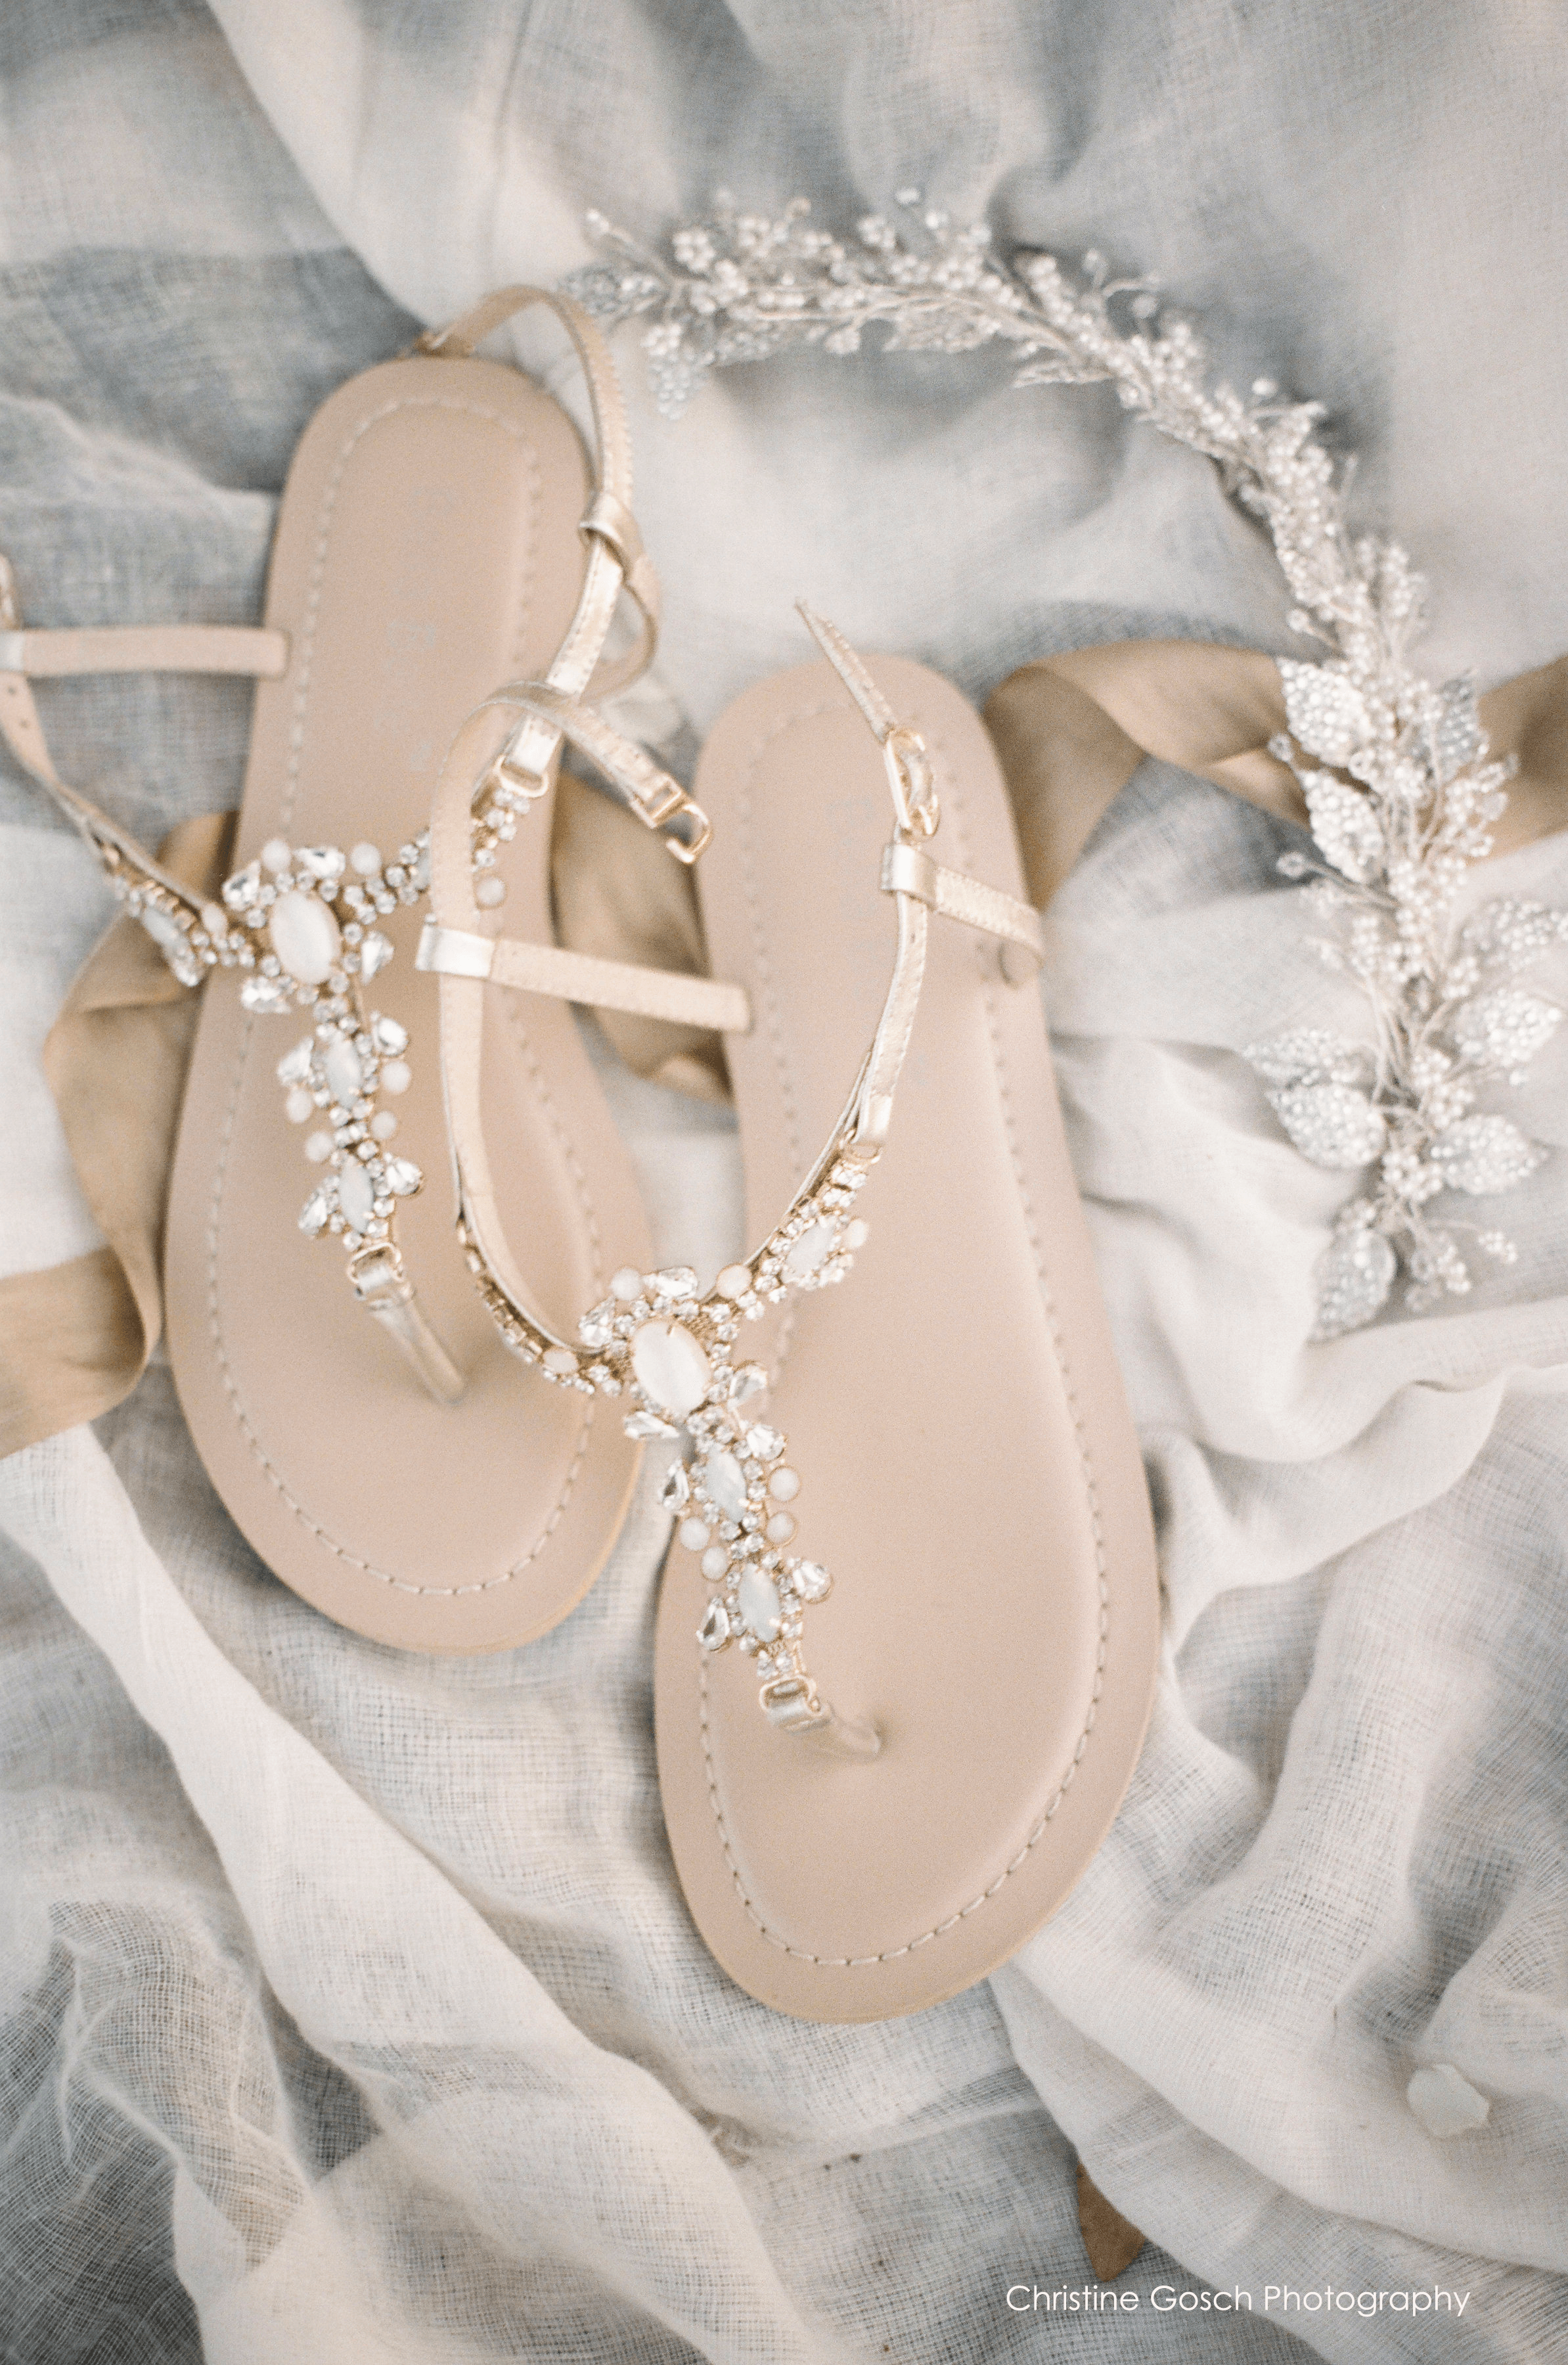 544910608a0e62 Thong sandal - Vintage-inspired rows of crystal jewels and white onyx-like  stones - Jewels set on gold metal plate - Light blue outsole for your   something ...